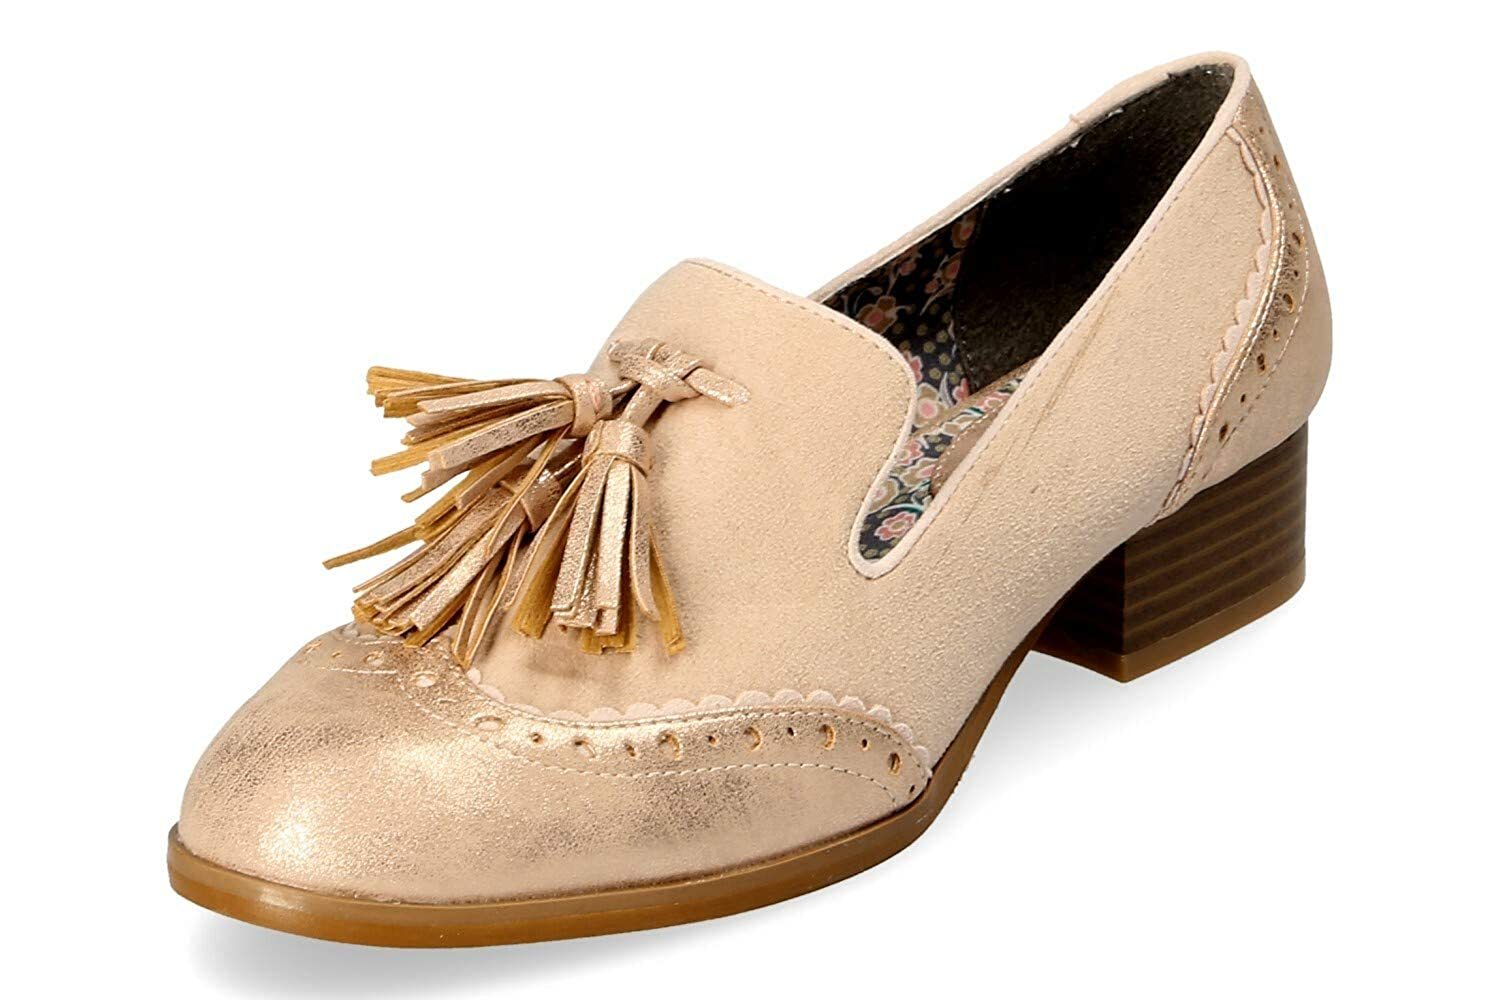 Ruby Shoo Damen Tara Pumps Beige Hell Gr. 37